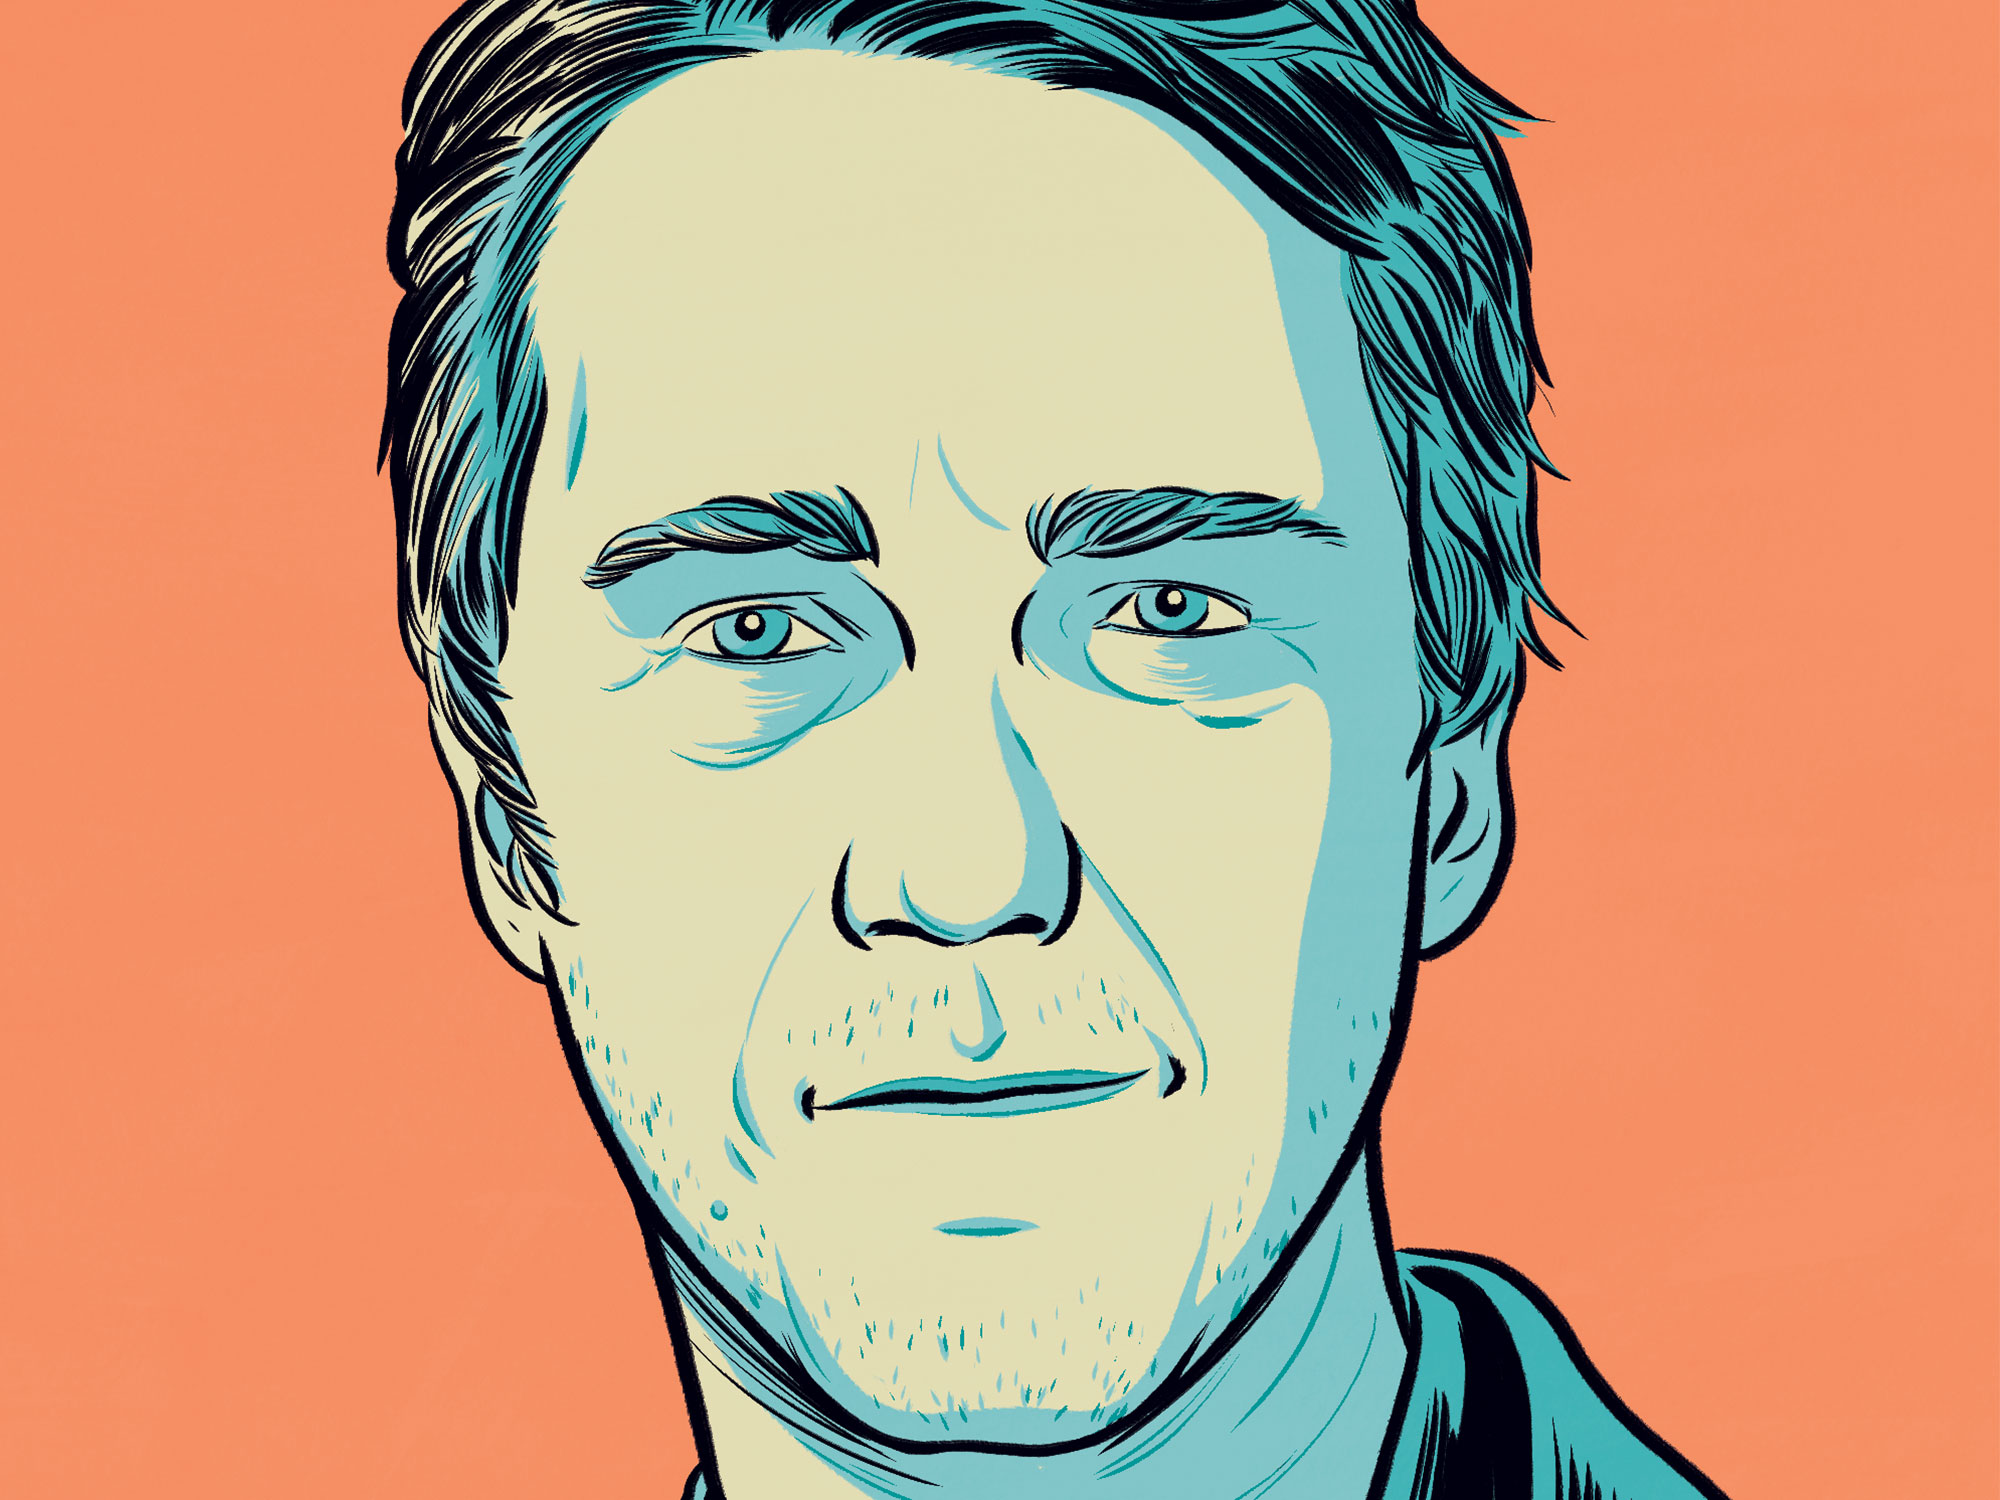 Edward Norton illustrated portrait